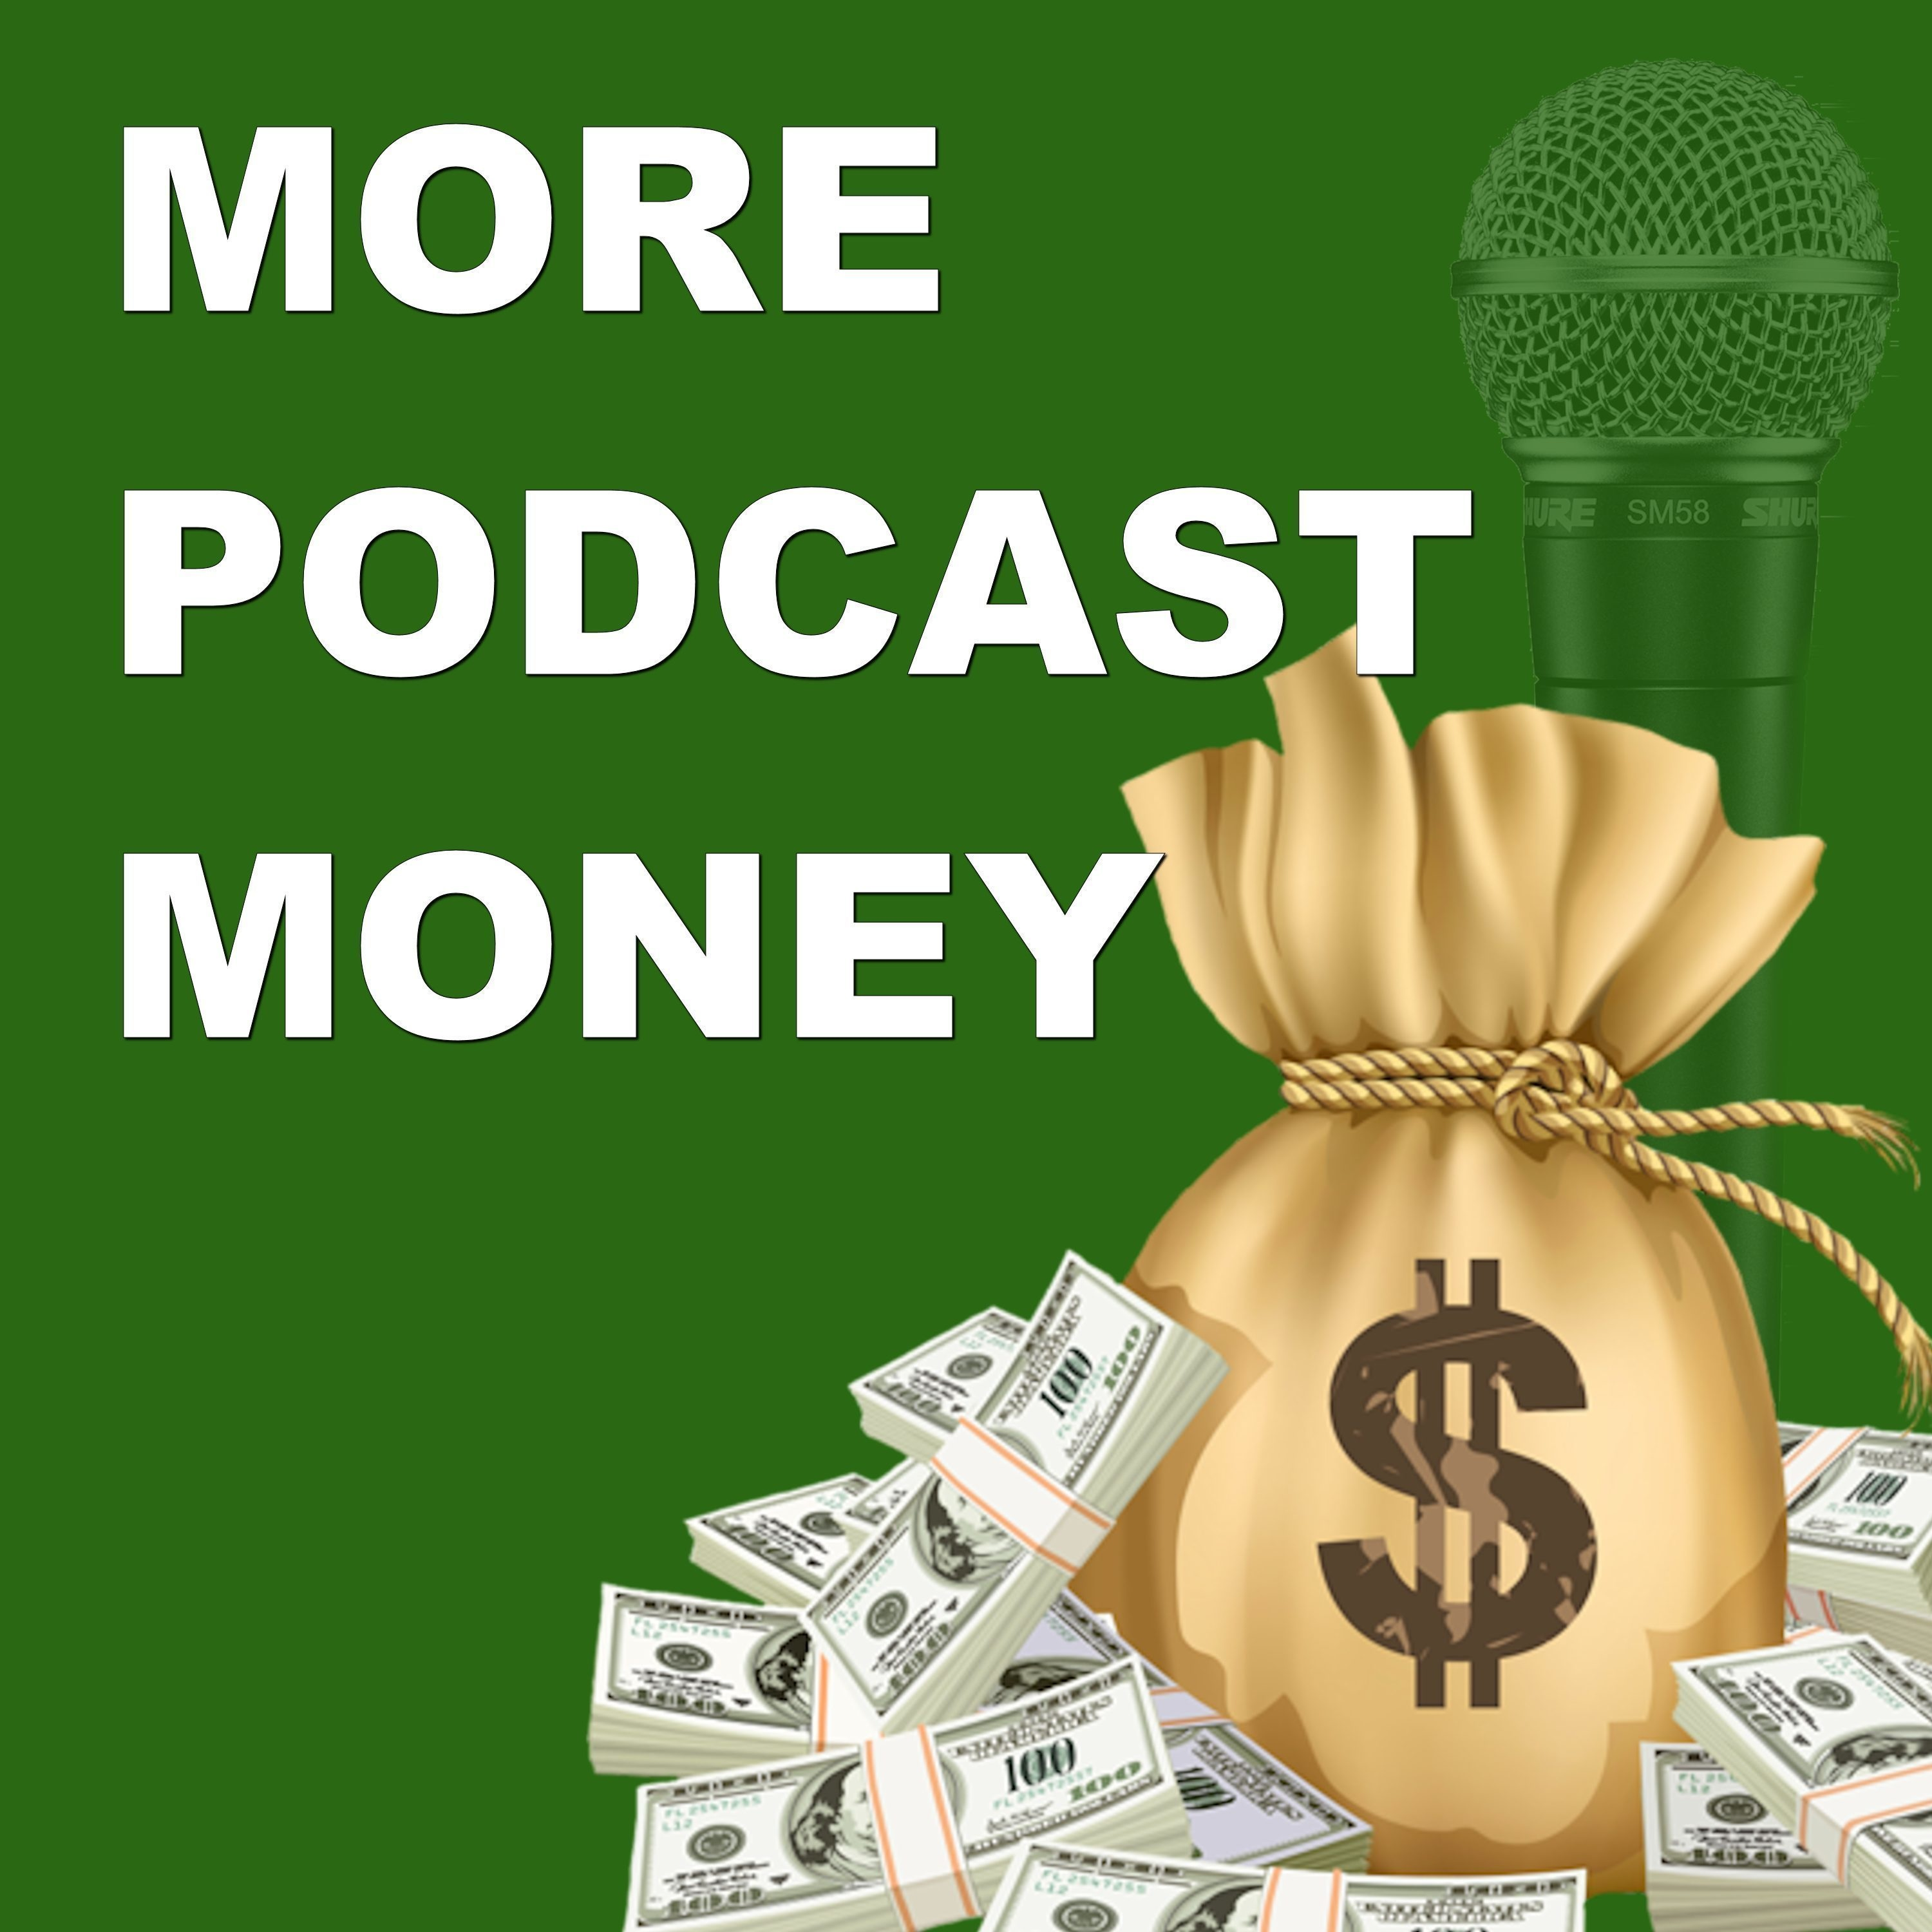 More Podcast Money